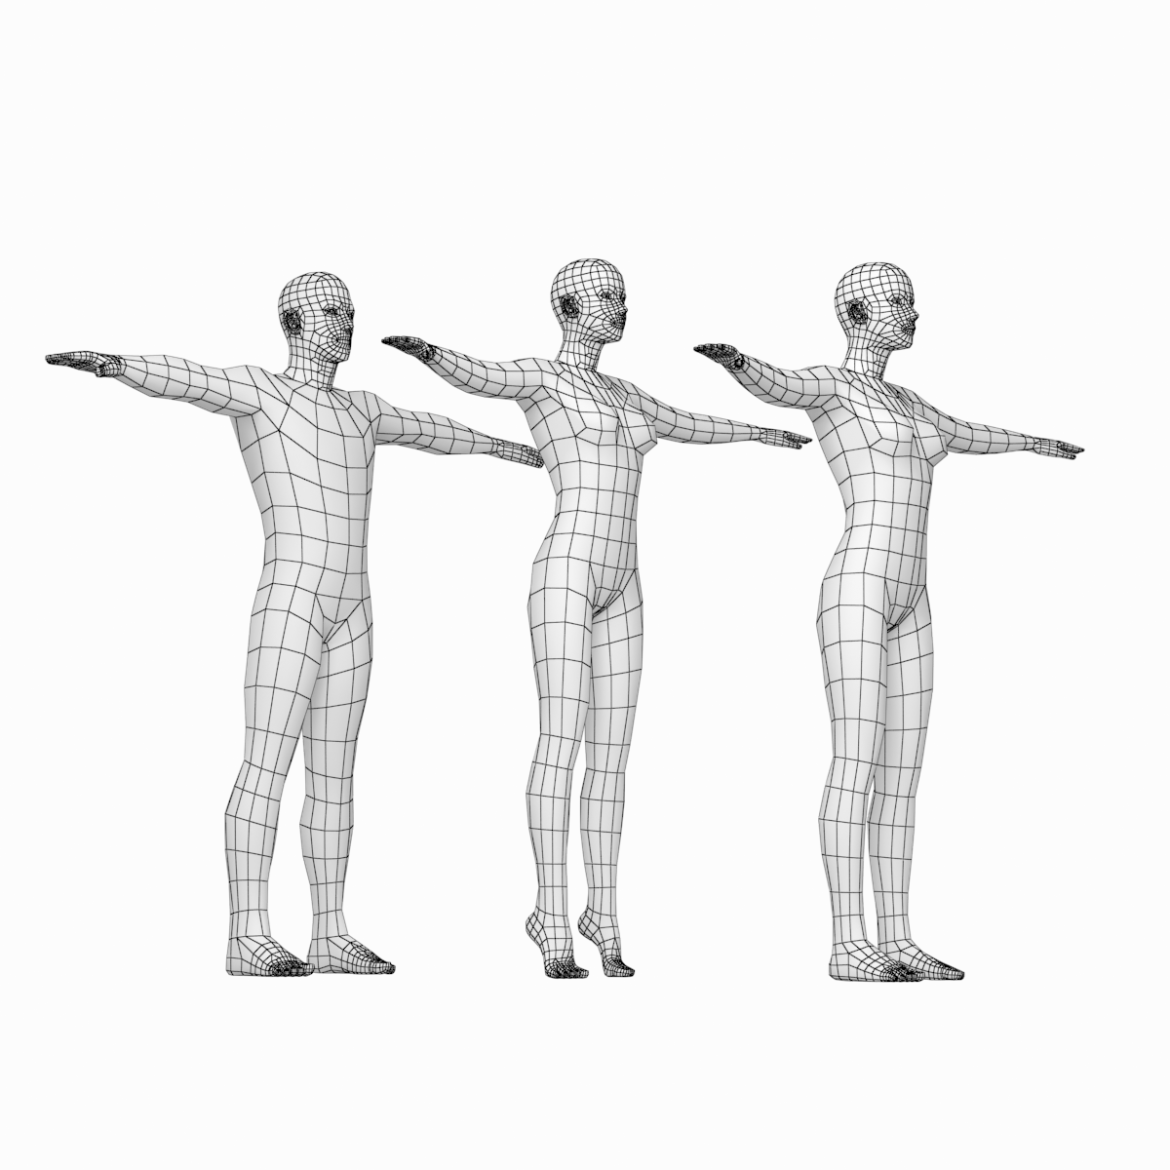 male and female base mesh in t-pose 3d model png stl obj ma mb max fbx dxf dwg dae c4d 3ds txt 305179